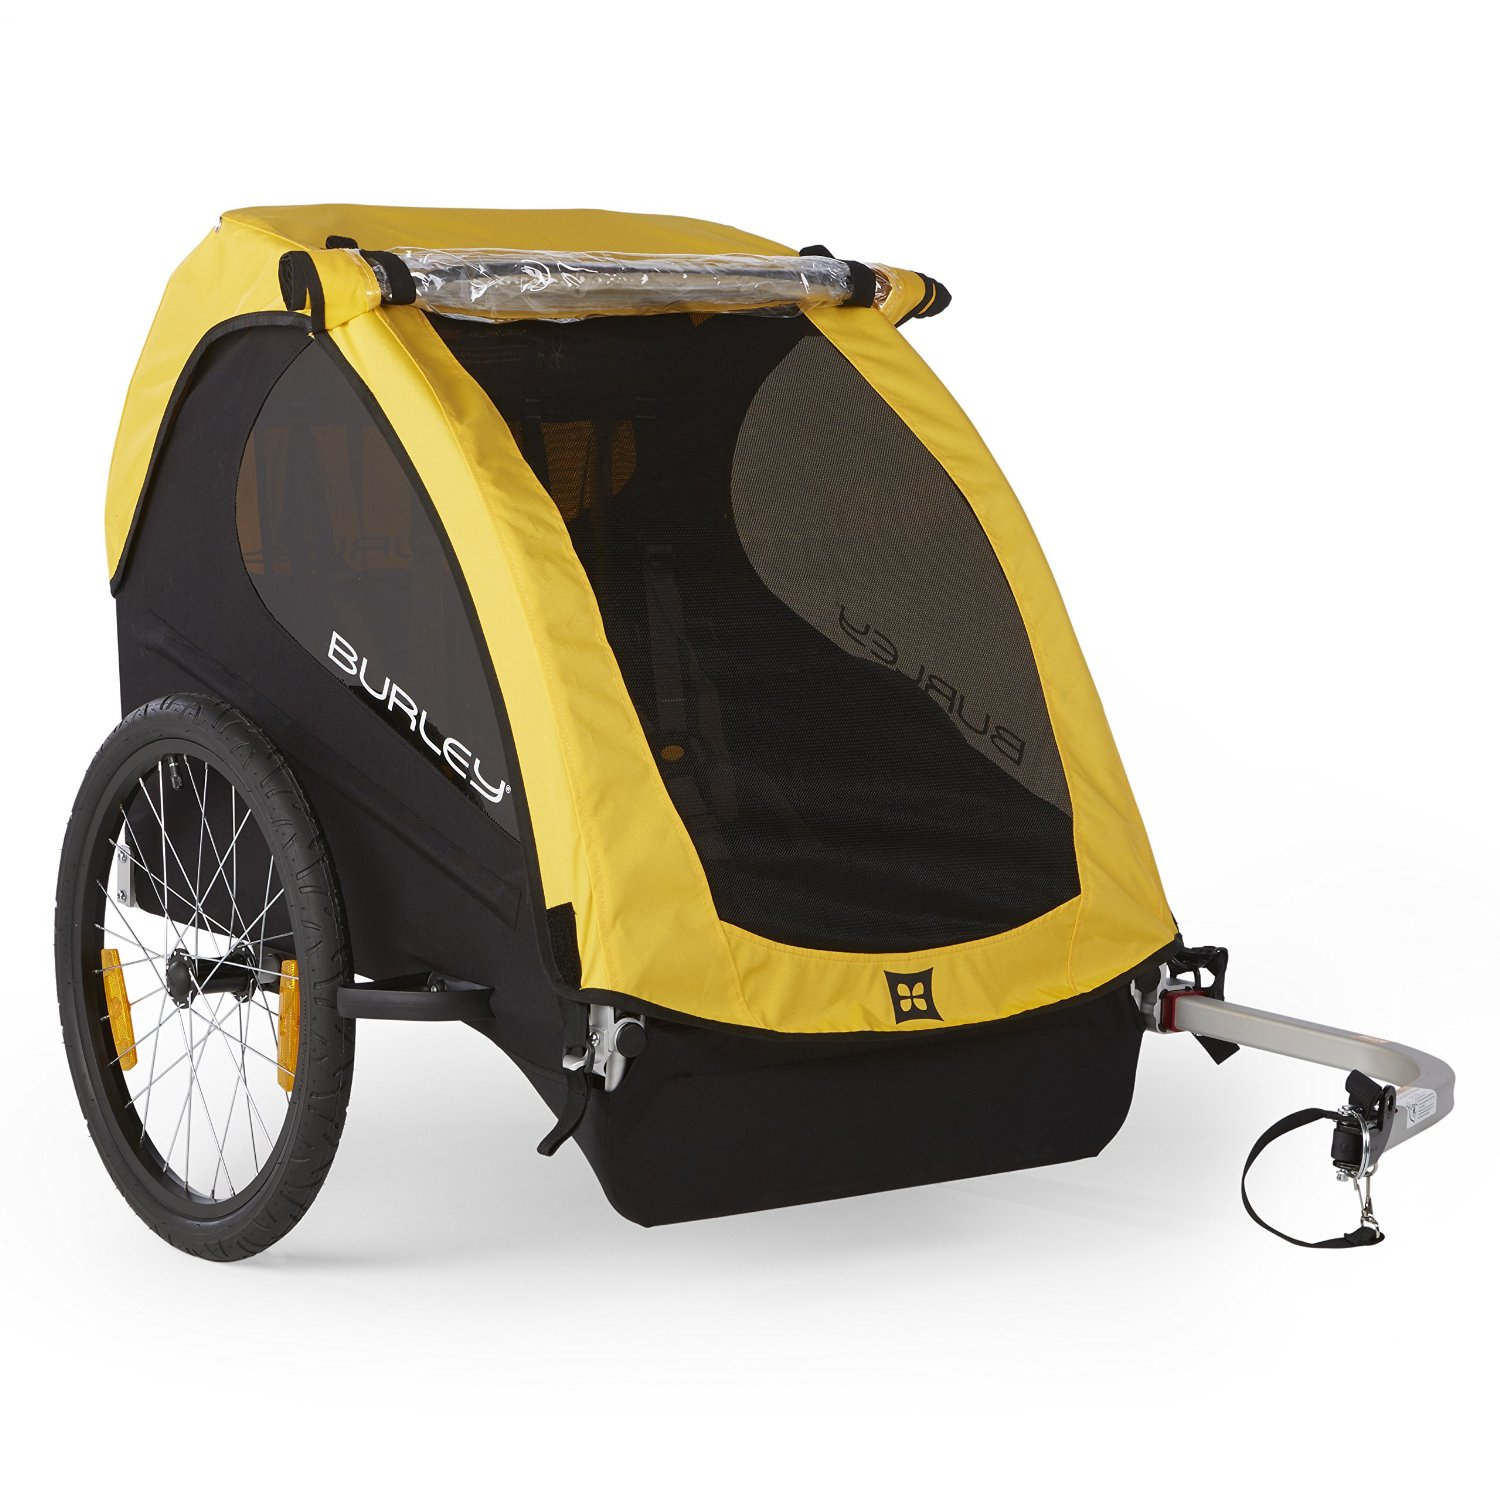 The Burley Bee bike Trailer